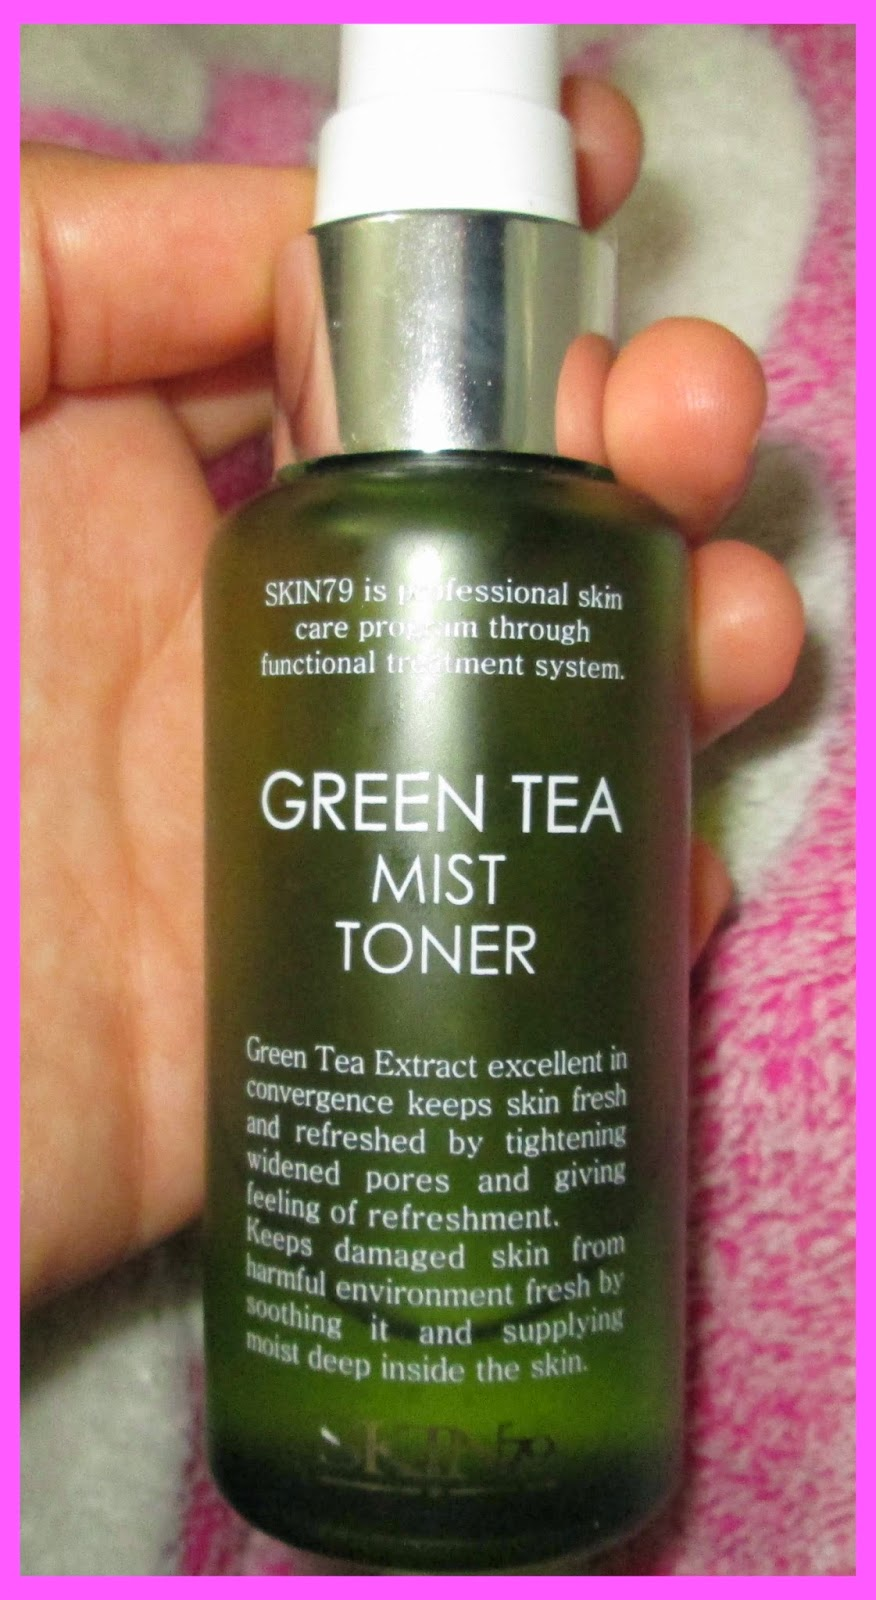 Review Skin79 Green Tea Mist Toner 60ml Beauty Diaries By Marie I Could Probably Attribute The Transformation To But Despite Everything Think Im Ready Part From My Favorite